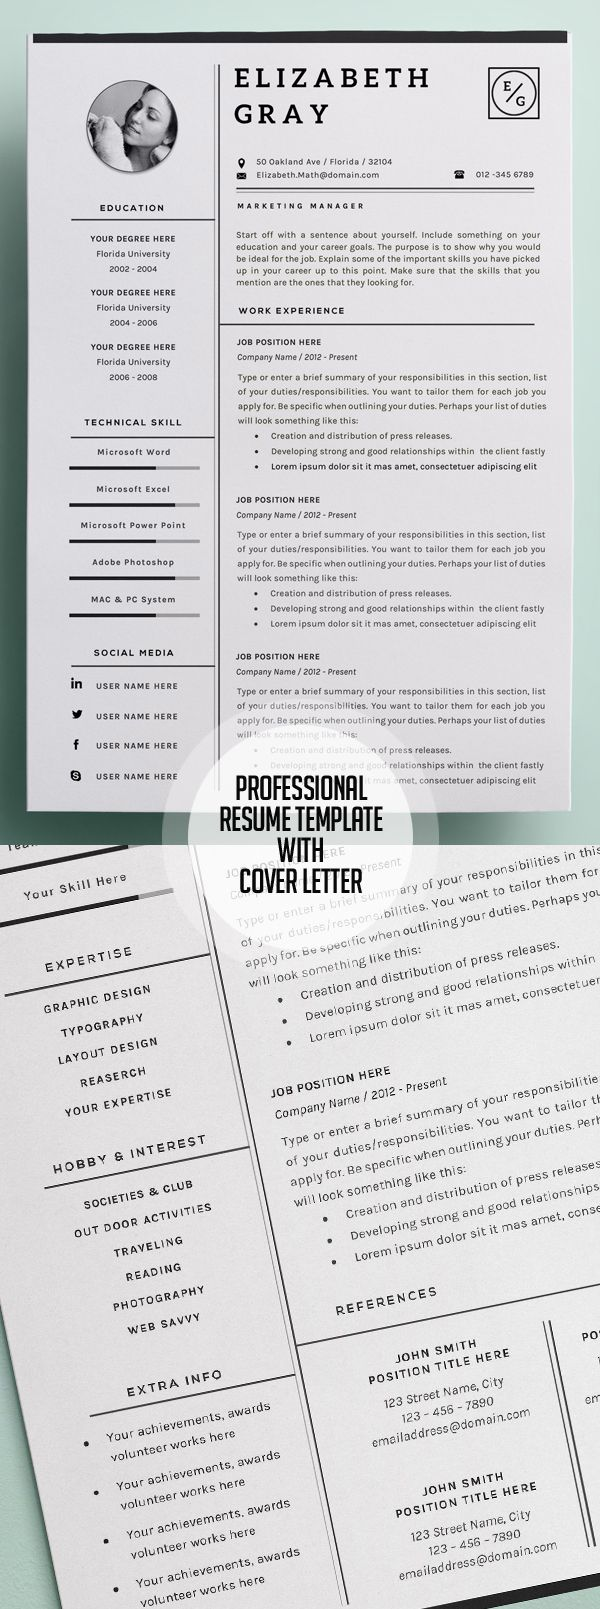 Opposenewapstandardsus  Mesmerizing  Resume Ideas On Pinterest  Resume Resume Templates And  With Excellent Professional And Modern Resume Template With Page Cover Cvtemplate With Easy On The Eye What Is A Good Resume Title Also Sample Resume For Project Manager In Addition Examples Of Summary On Resume And Linkedin Resume Examples As Well As Best Free Resume Site Additionally What To Include In Your Resume From Pinterestcom With Opposenewapstandardsus  Excellent  Resume Ideas On Pinterest  Resume Resume Templates And  With Easy On The Eye Professional And Modern Resume Template With Page Cover Cvtemplate And Mesmerizing What Is A Good Resume Title Also Sample Resume For Project Manager In Addition Examples Of Summary On Resume From Pinterestcom